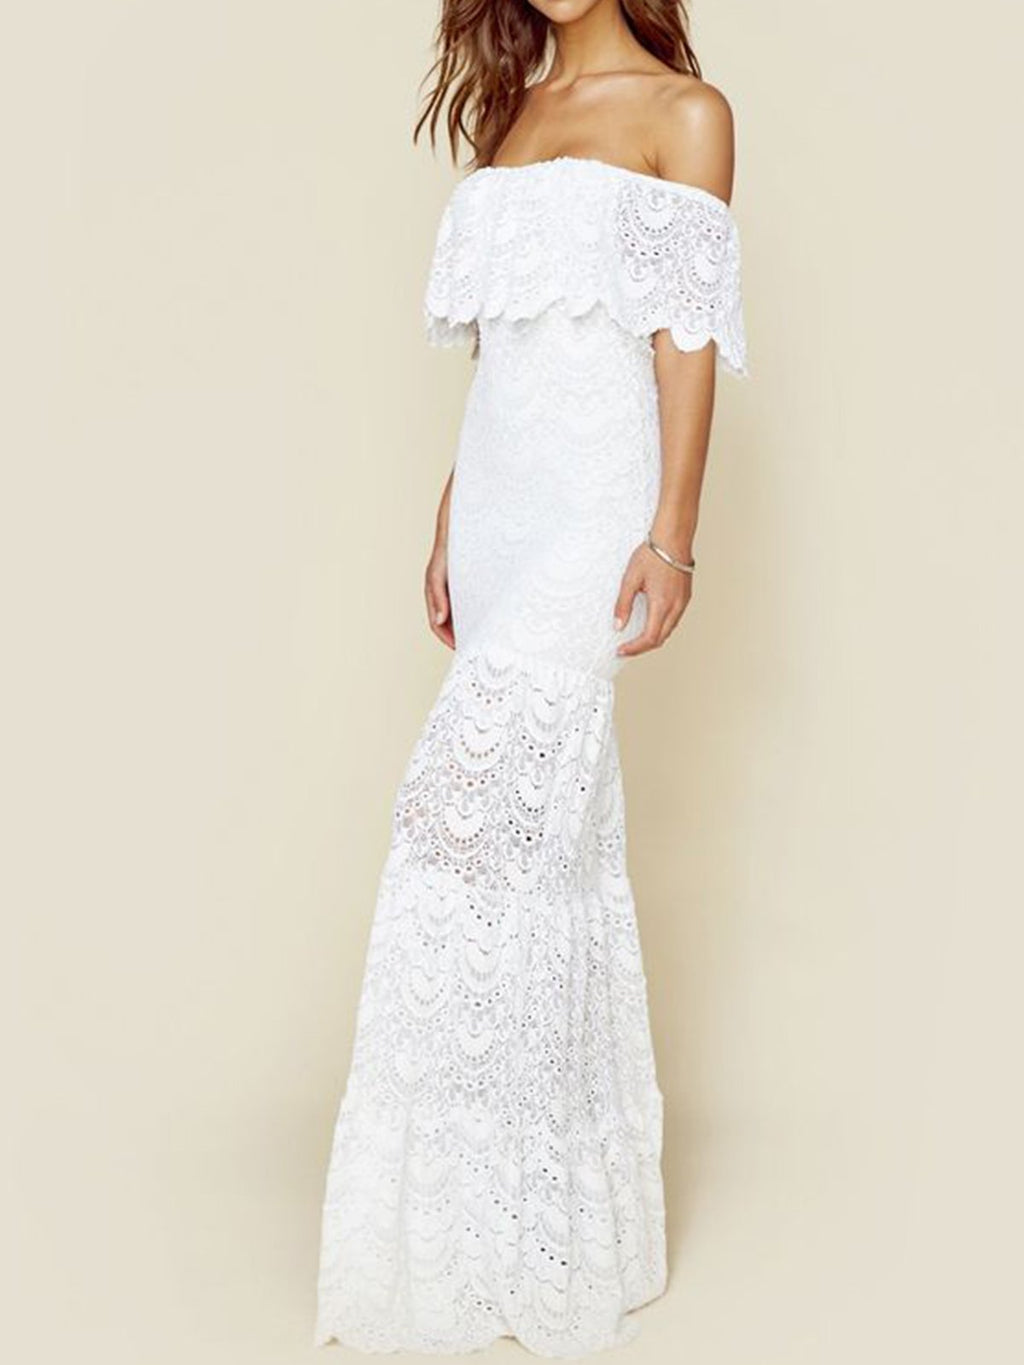 Lace Off-shoulder Sheath Beach Maxi Dress